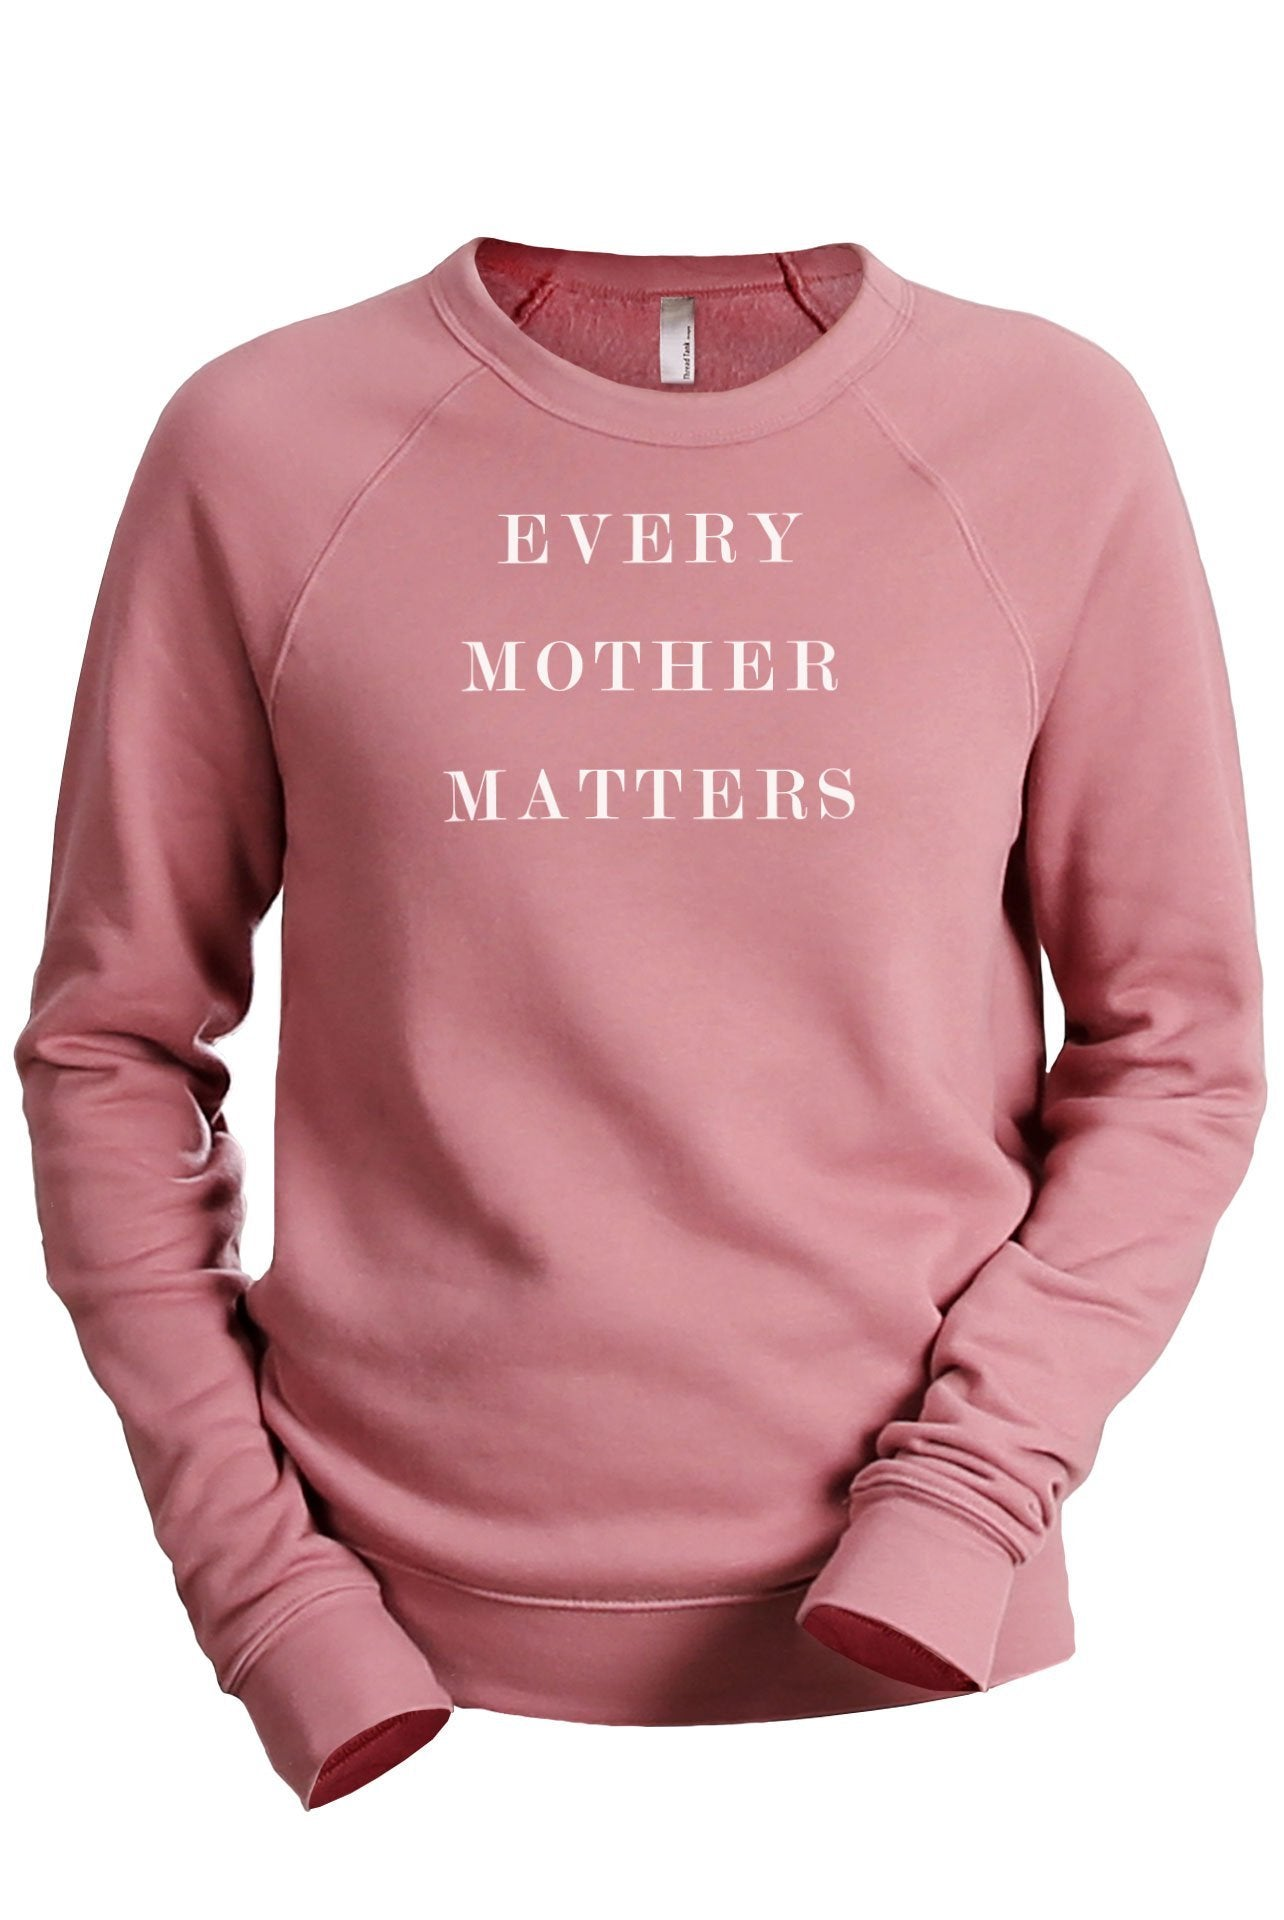 Every Mother Matters Women's Cozy Fleece Longsleeves Sweater Rouge FRONT